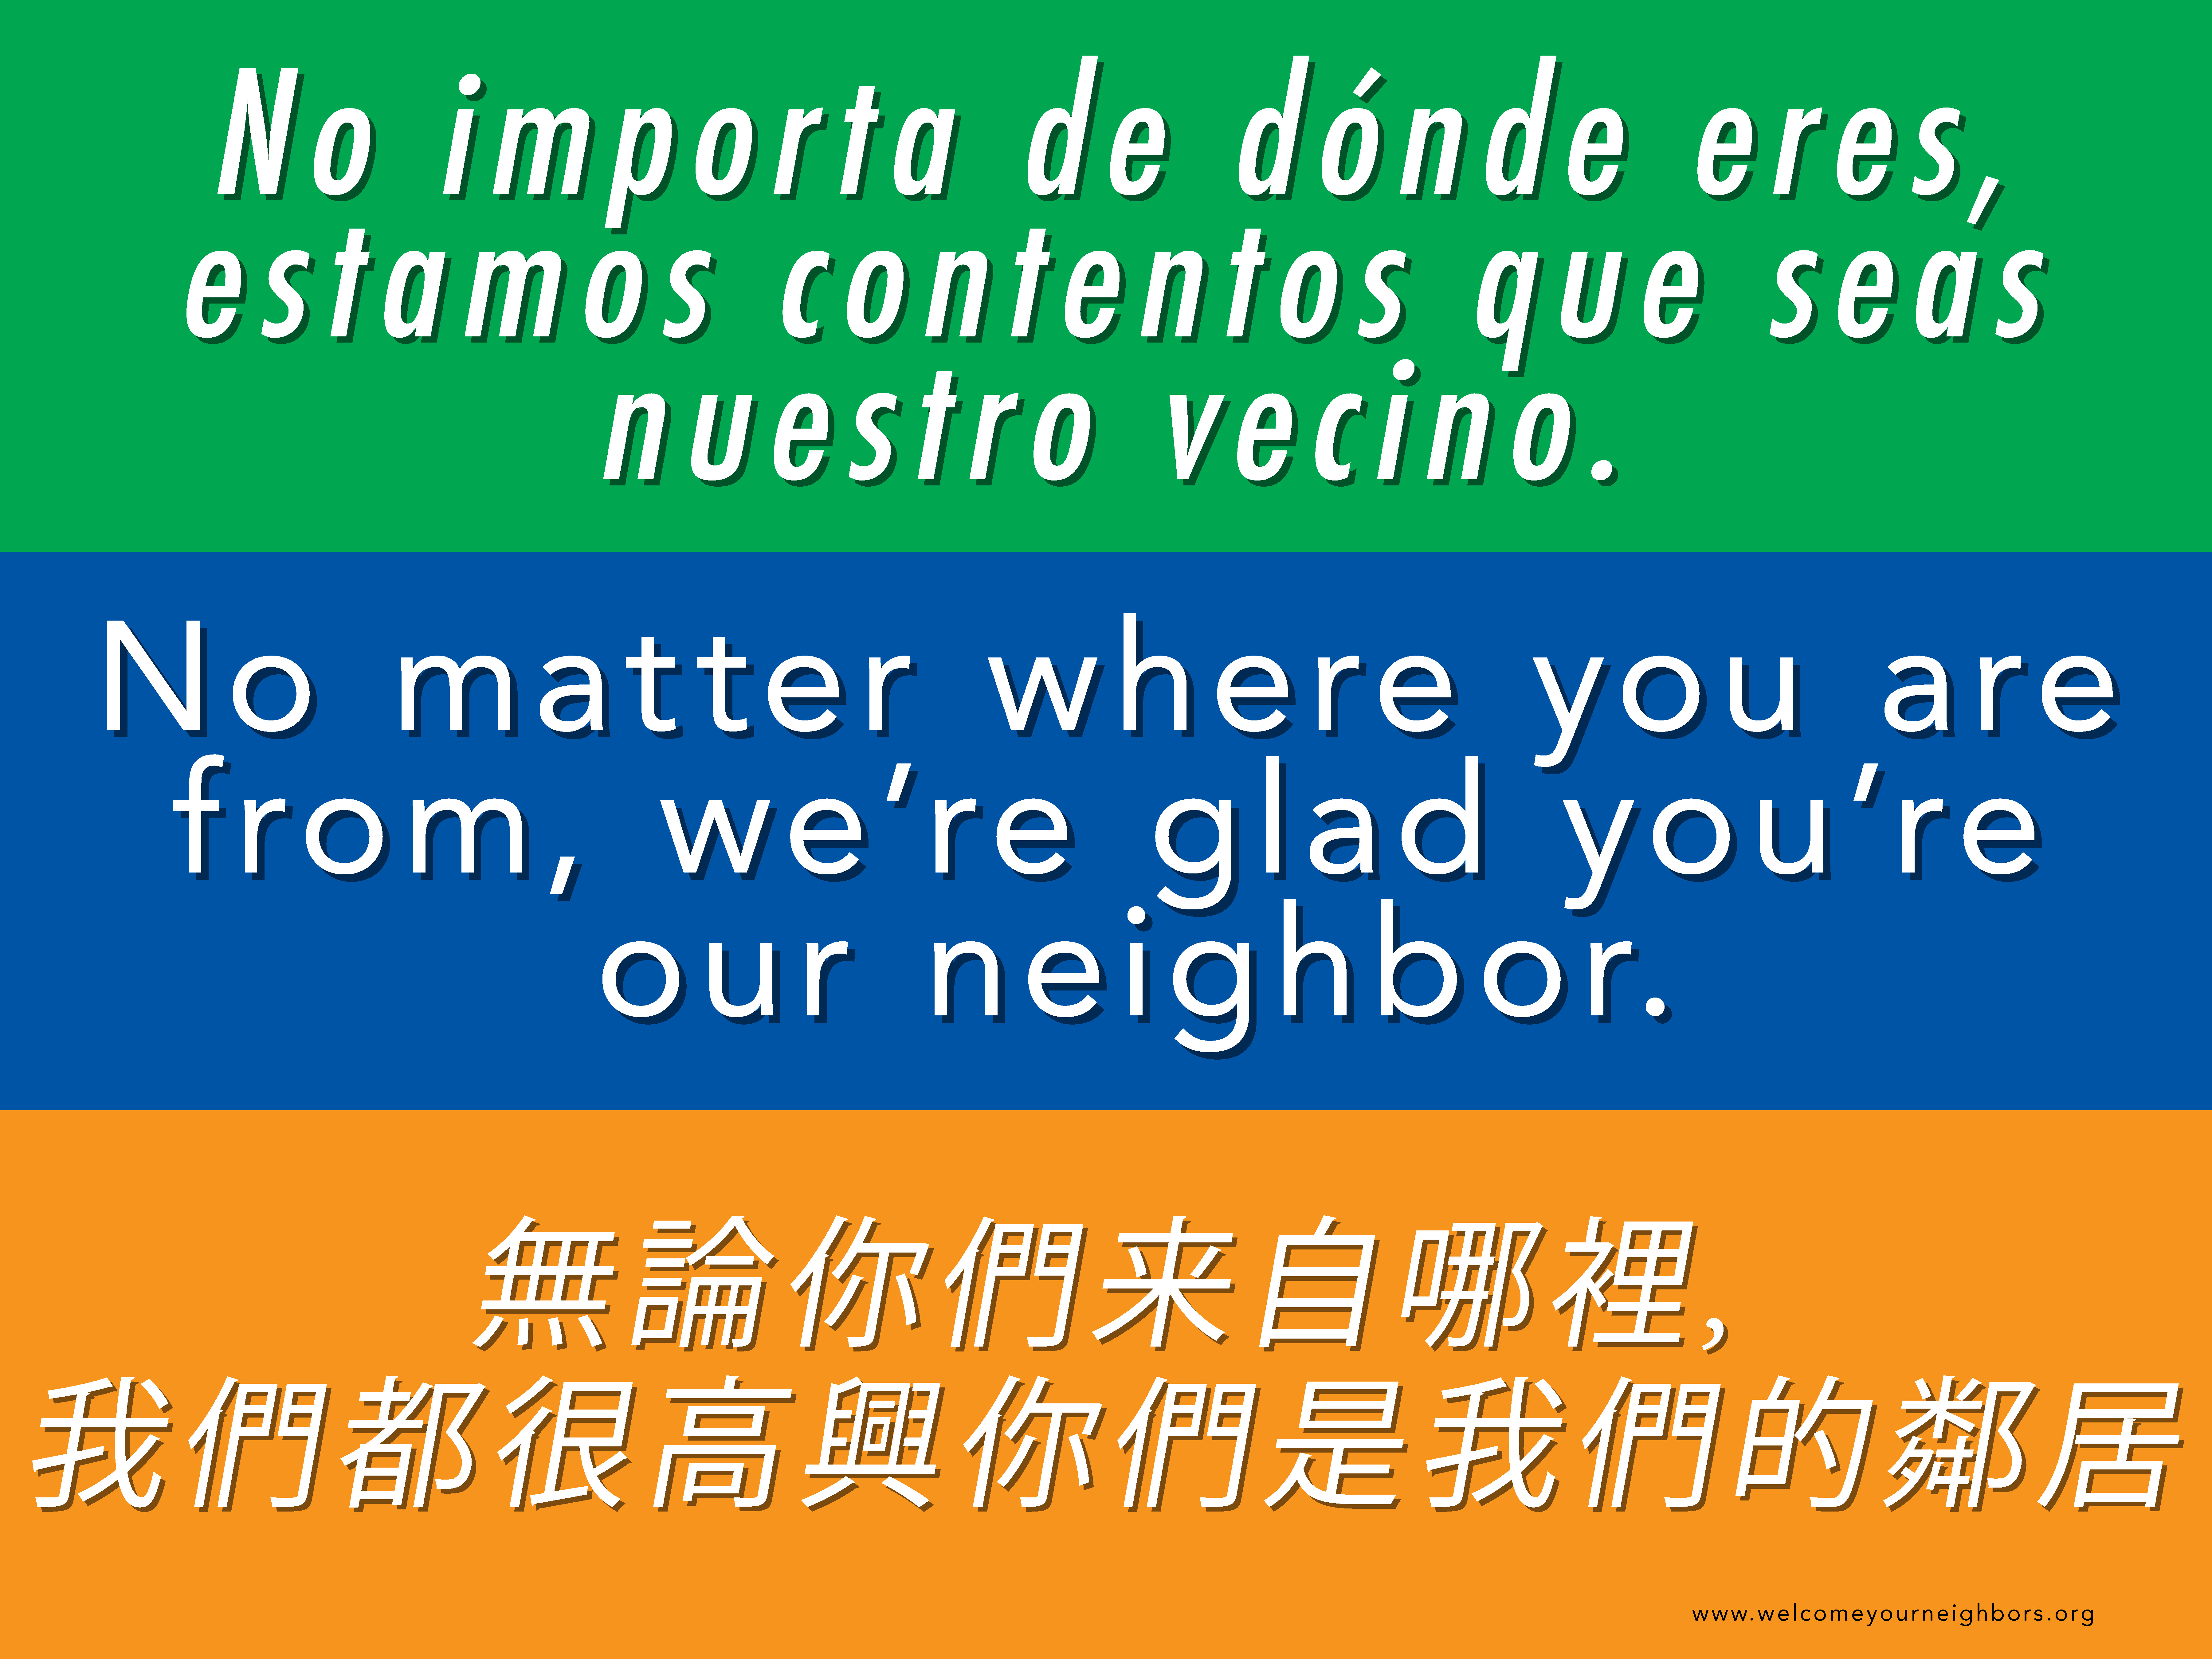 Welcome Your Neighbors No Matter Where You Are From Were Glad